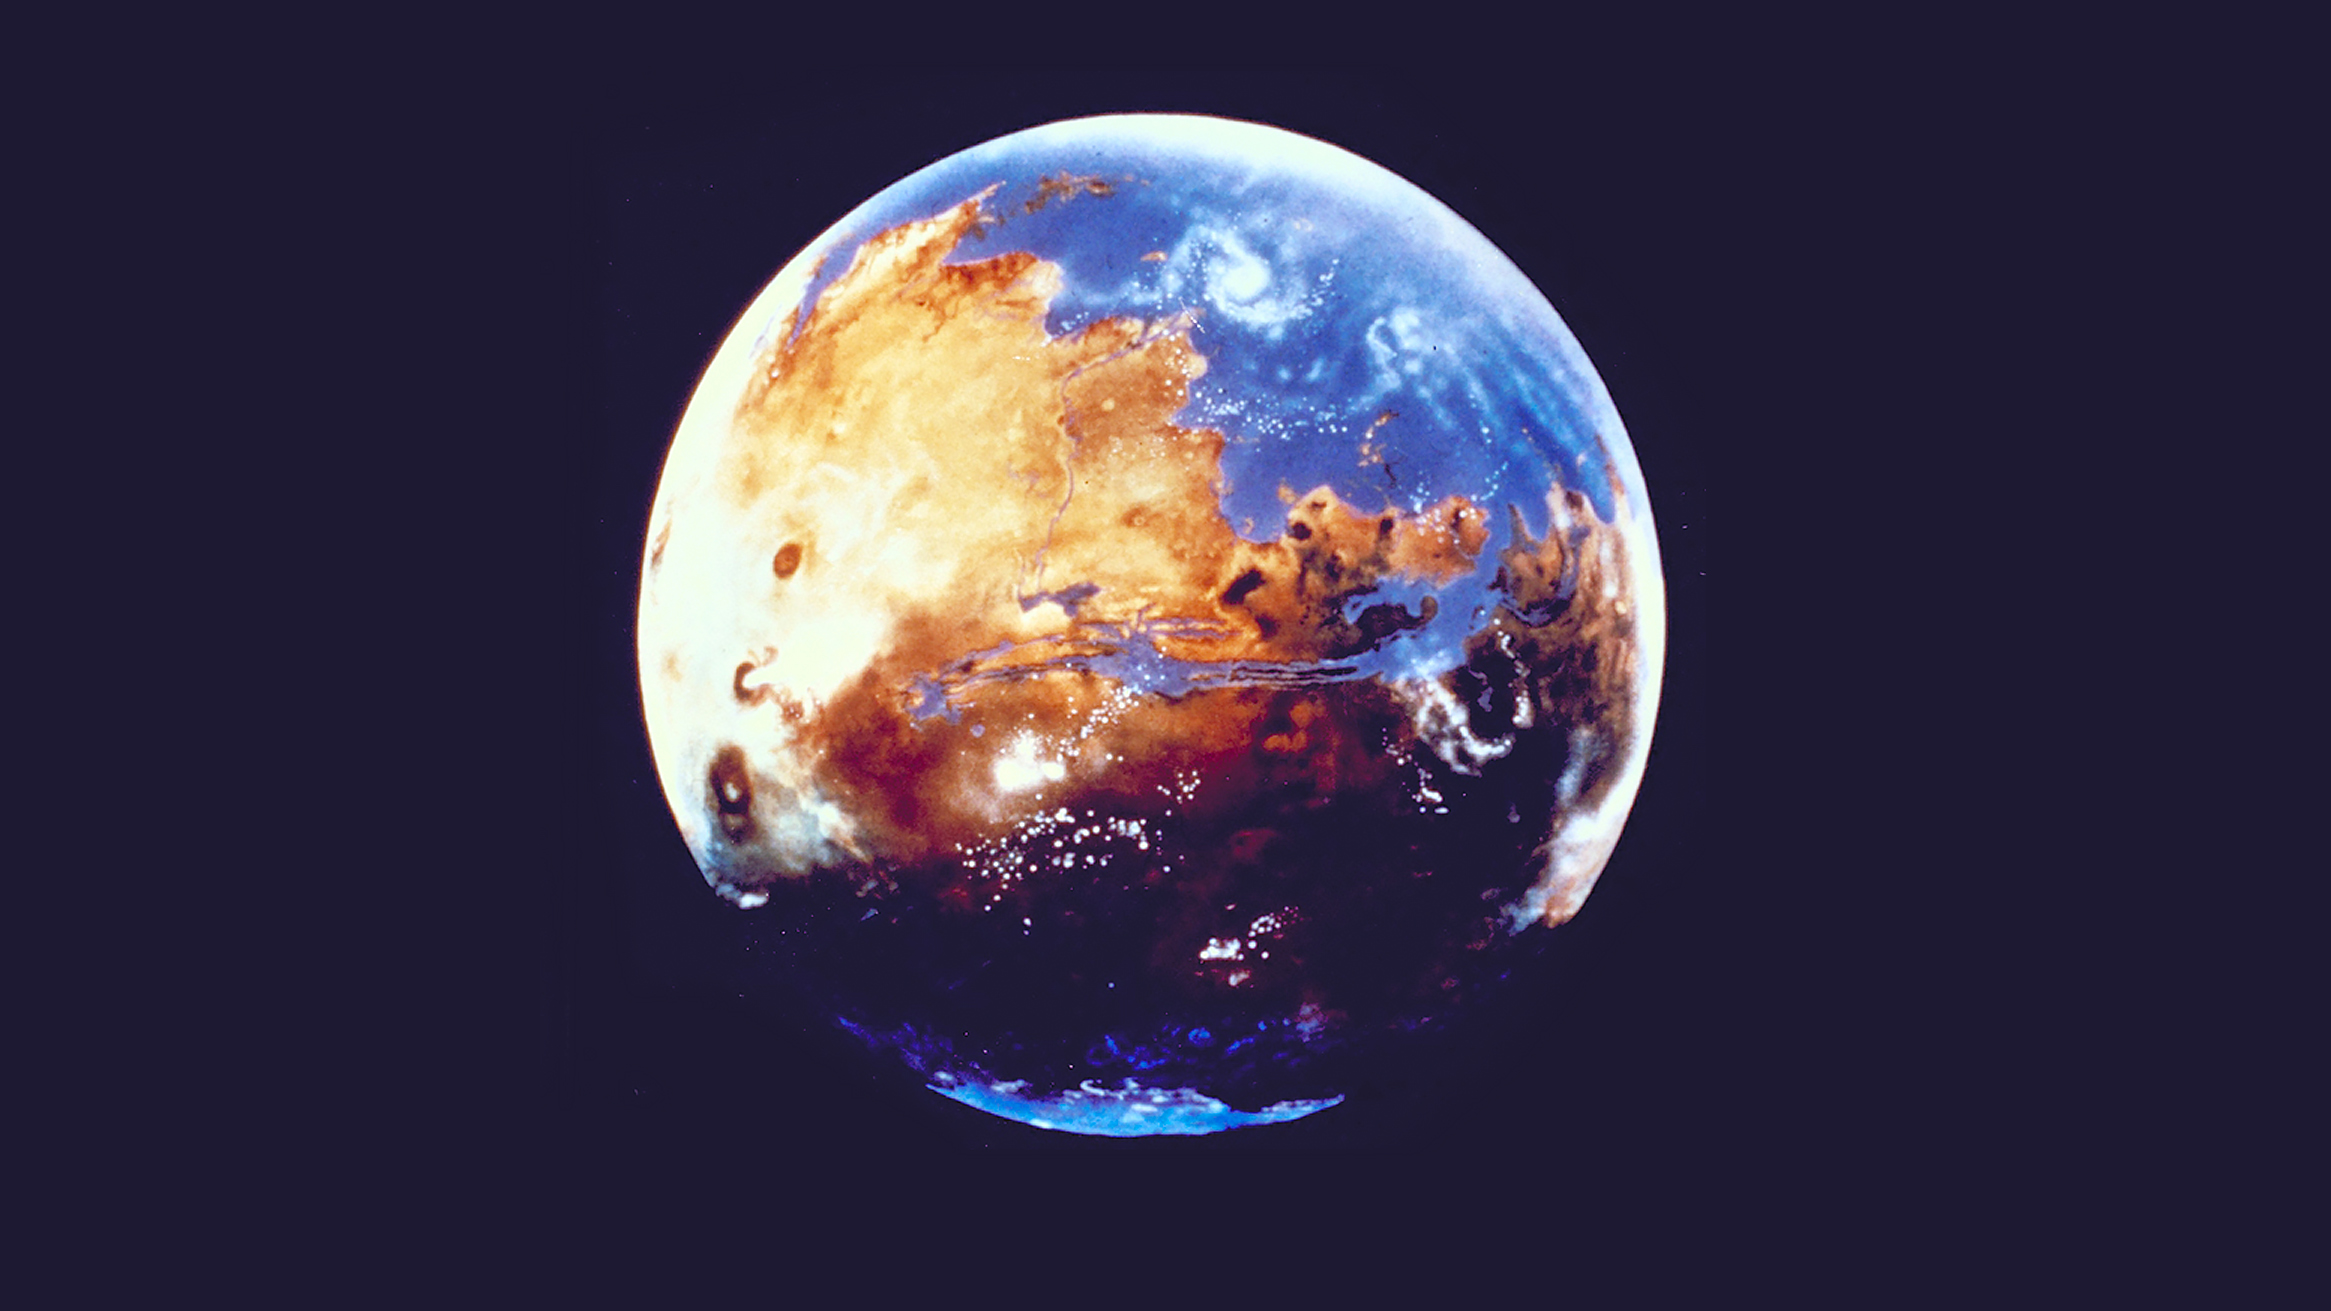 illustrator's concept of Mars in future with water